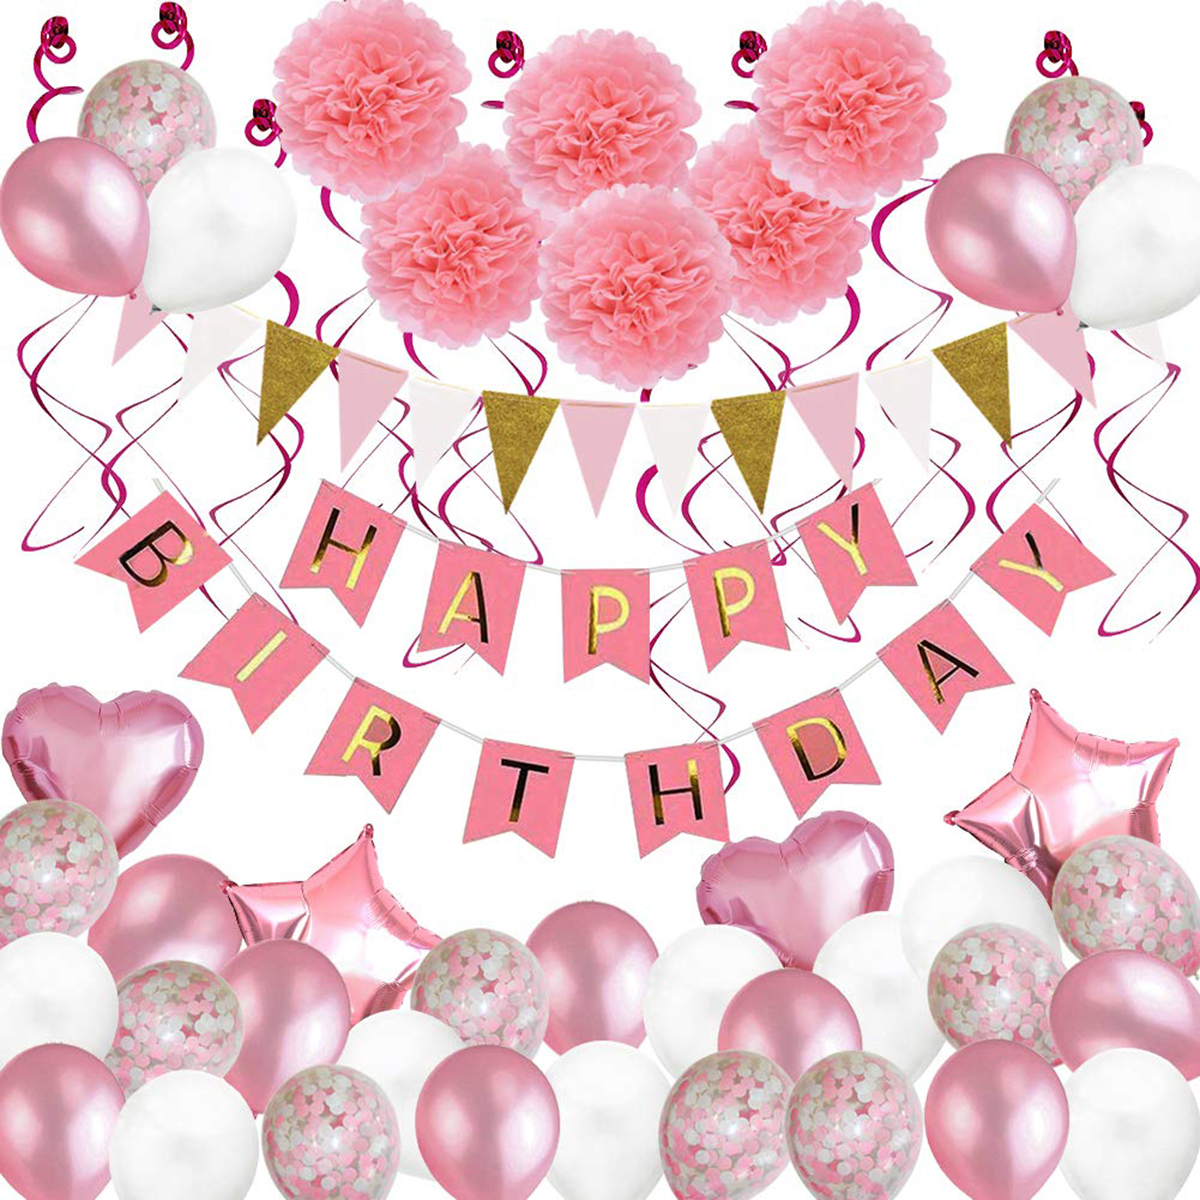 Pink Birthday Party Supplies Decor Kit Foil & Latex Balloons Happy Birthday Banner Swirls Paper Flowers Party Decor For Indoor